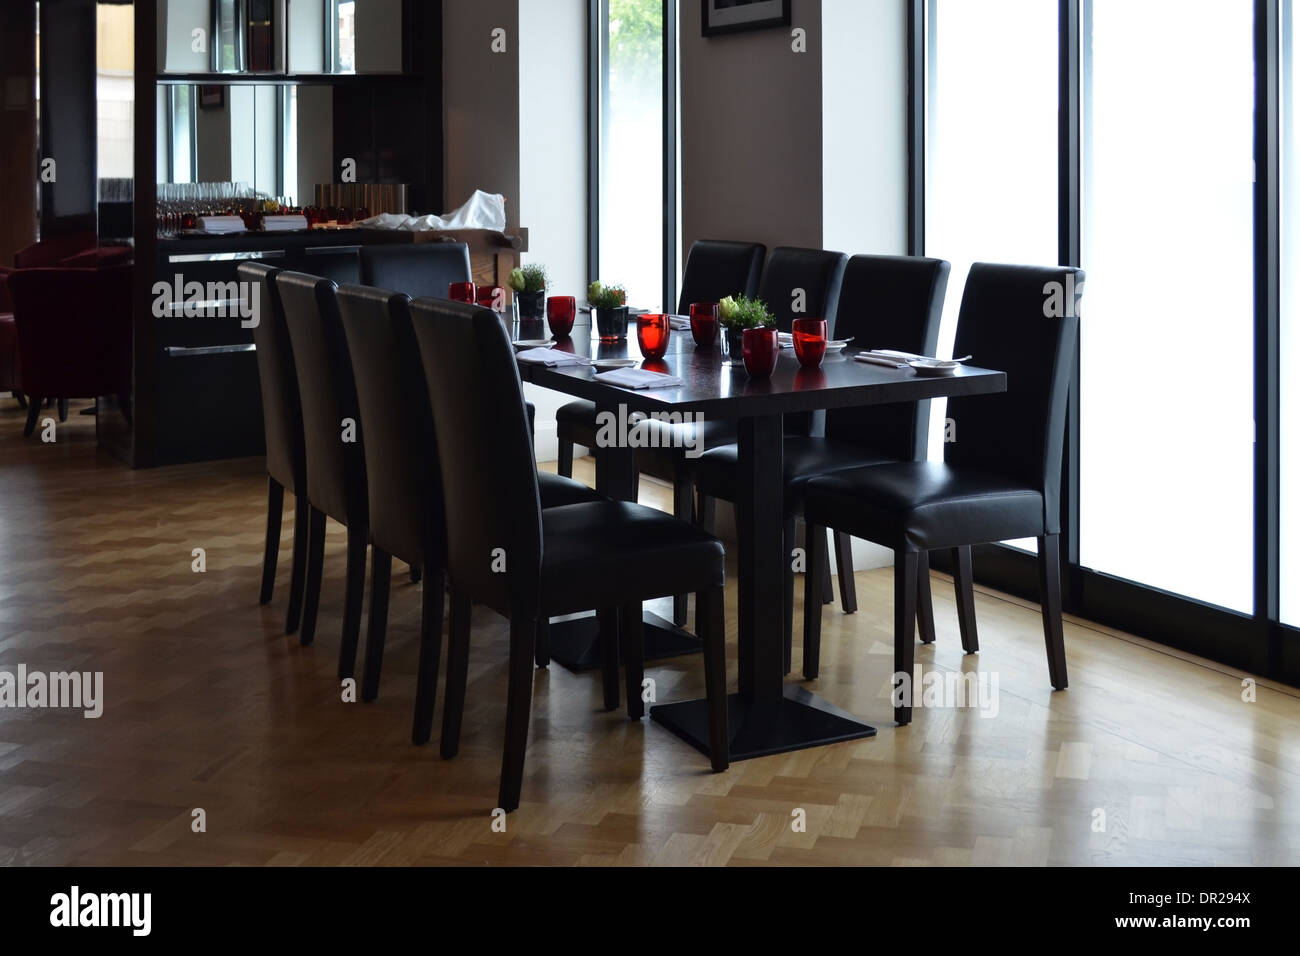 A large dining table at Alimentum Restaurant, Cambridge - Stock Image